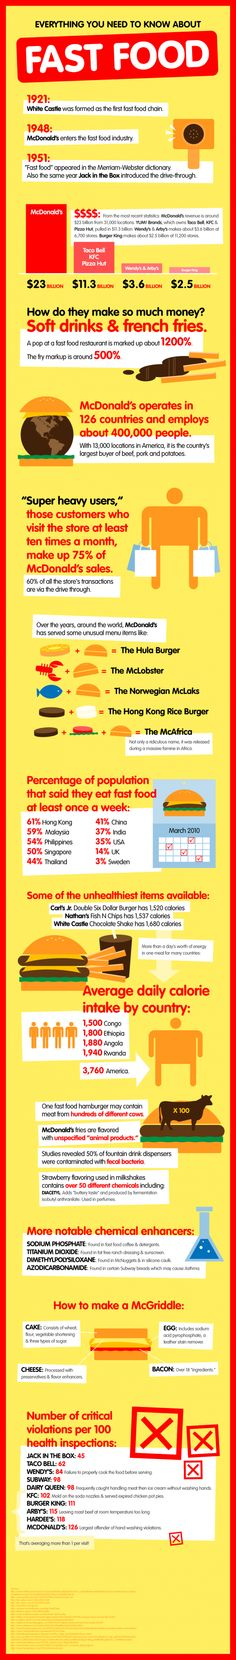 Fast Food Infographic - Holy Yuck!